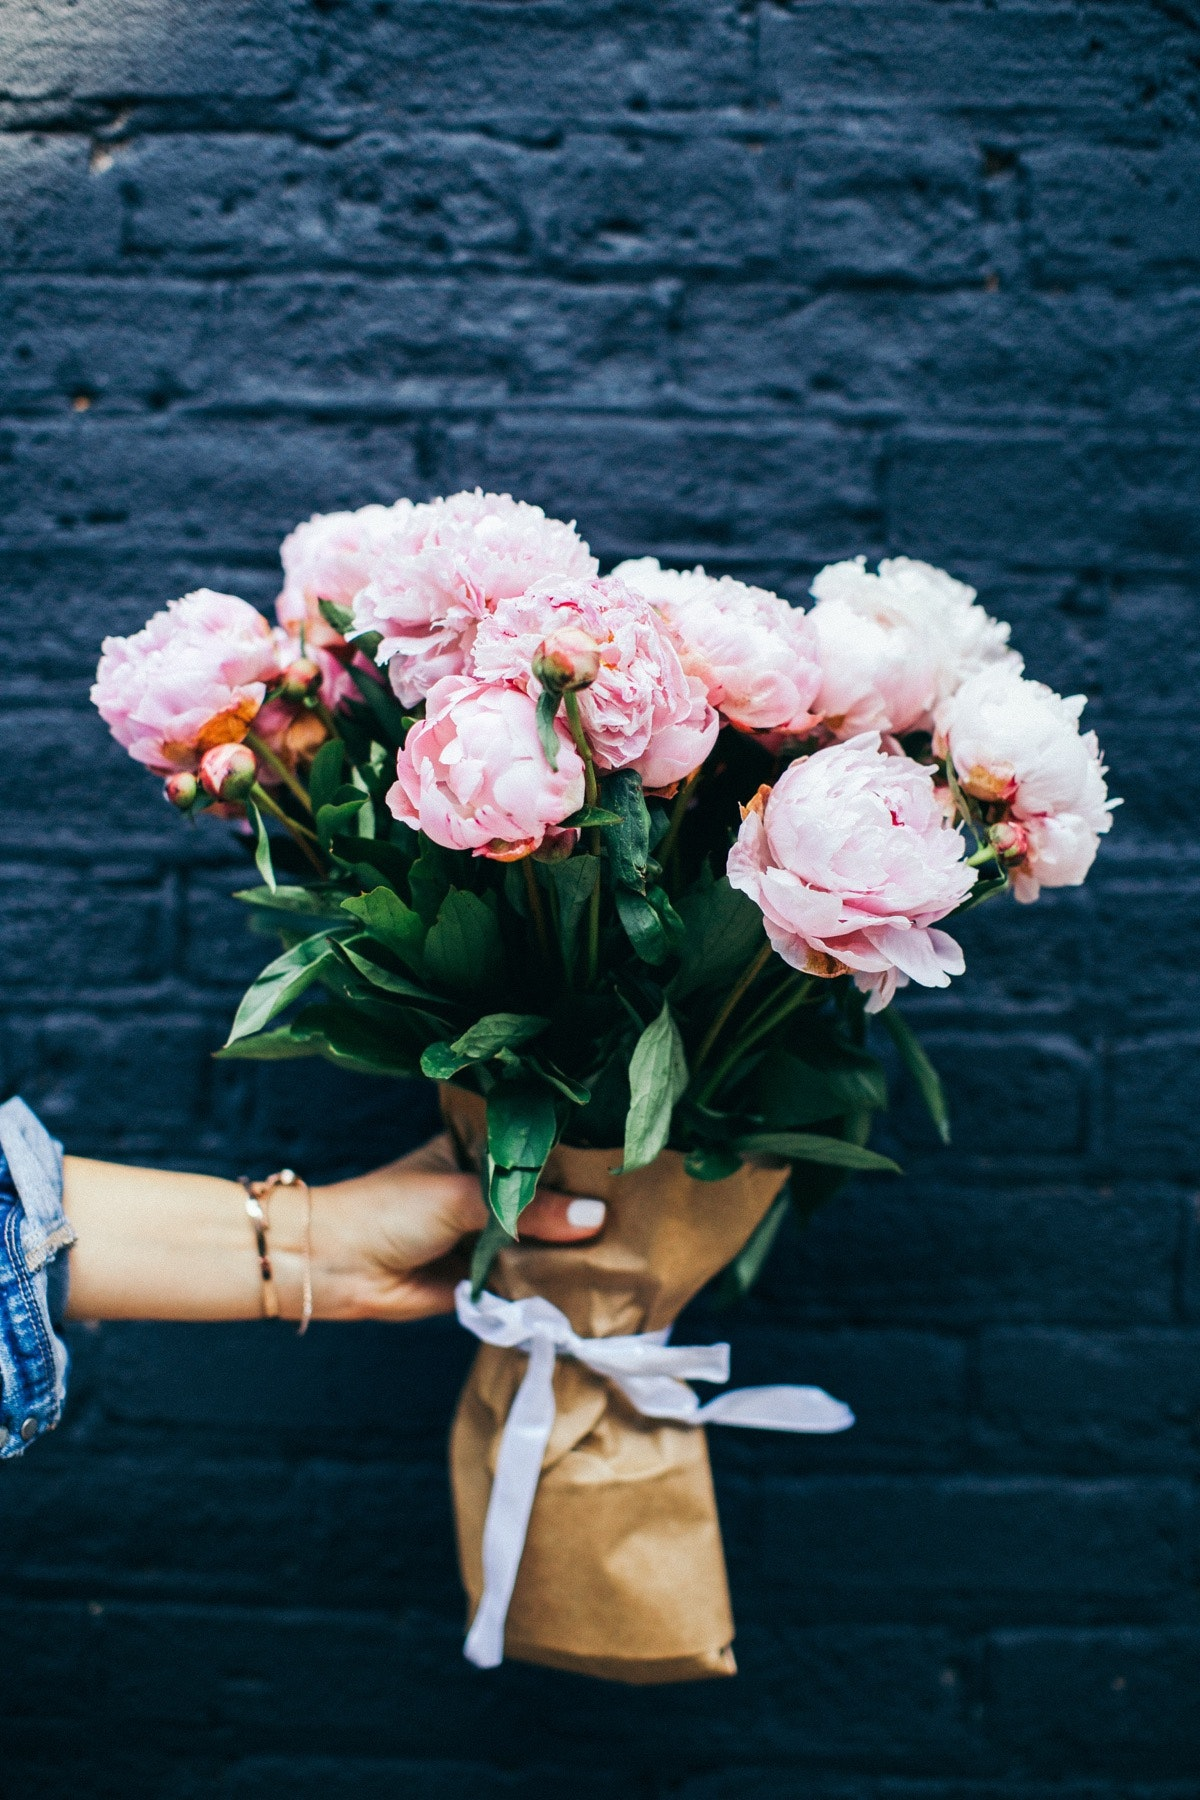 232 Flowery Bouquet Photos · Pexels · Free Stock Photos